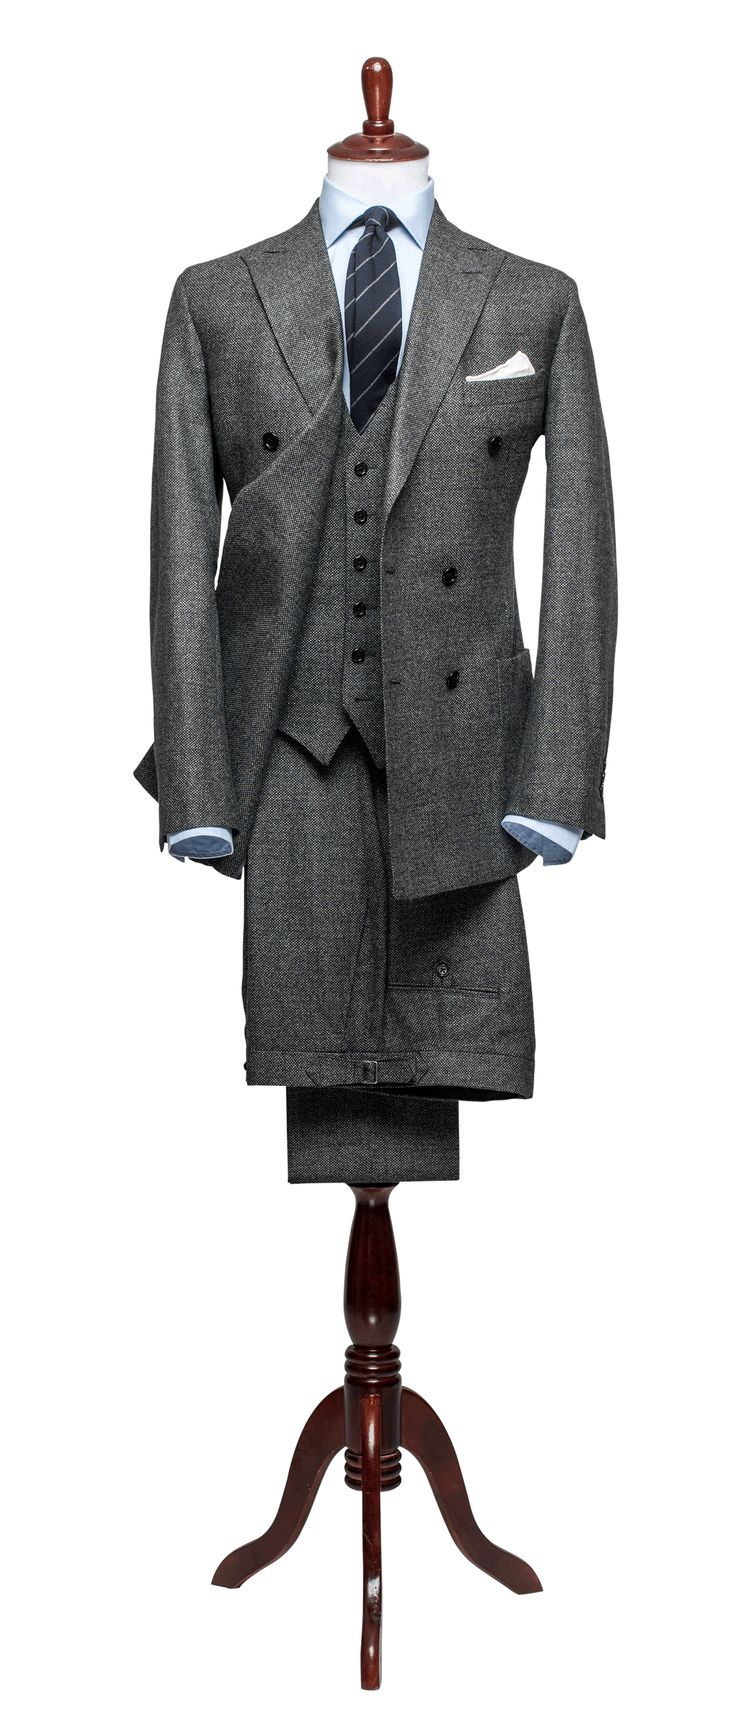 Articles of Style: Charcoal Birdseye